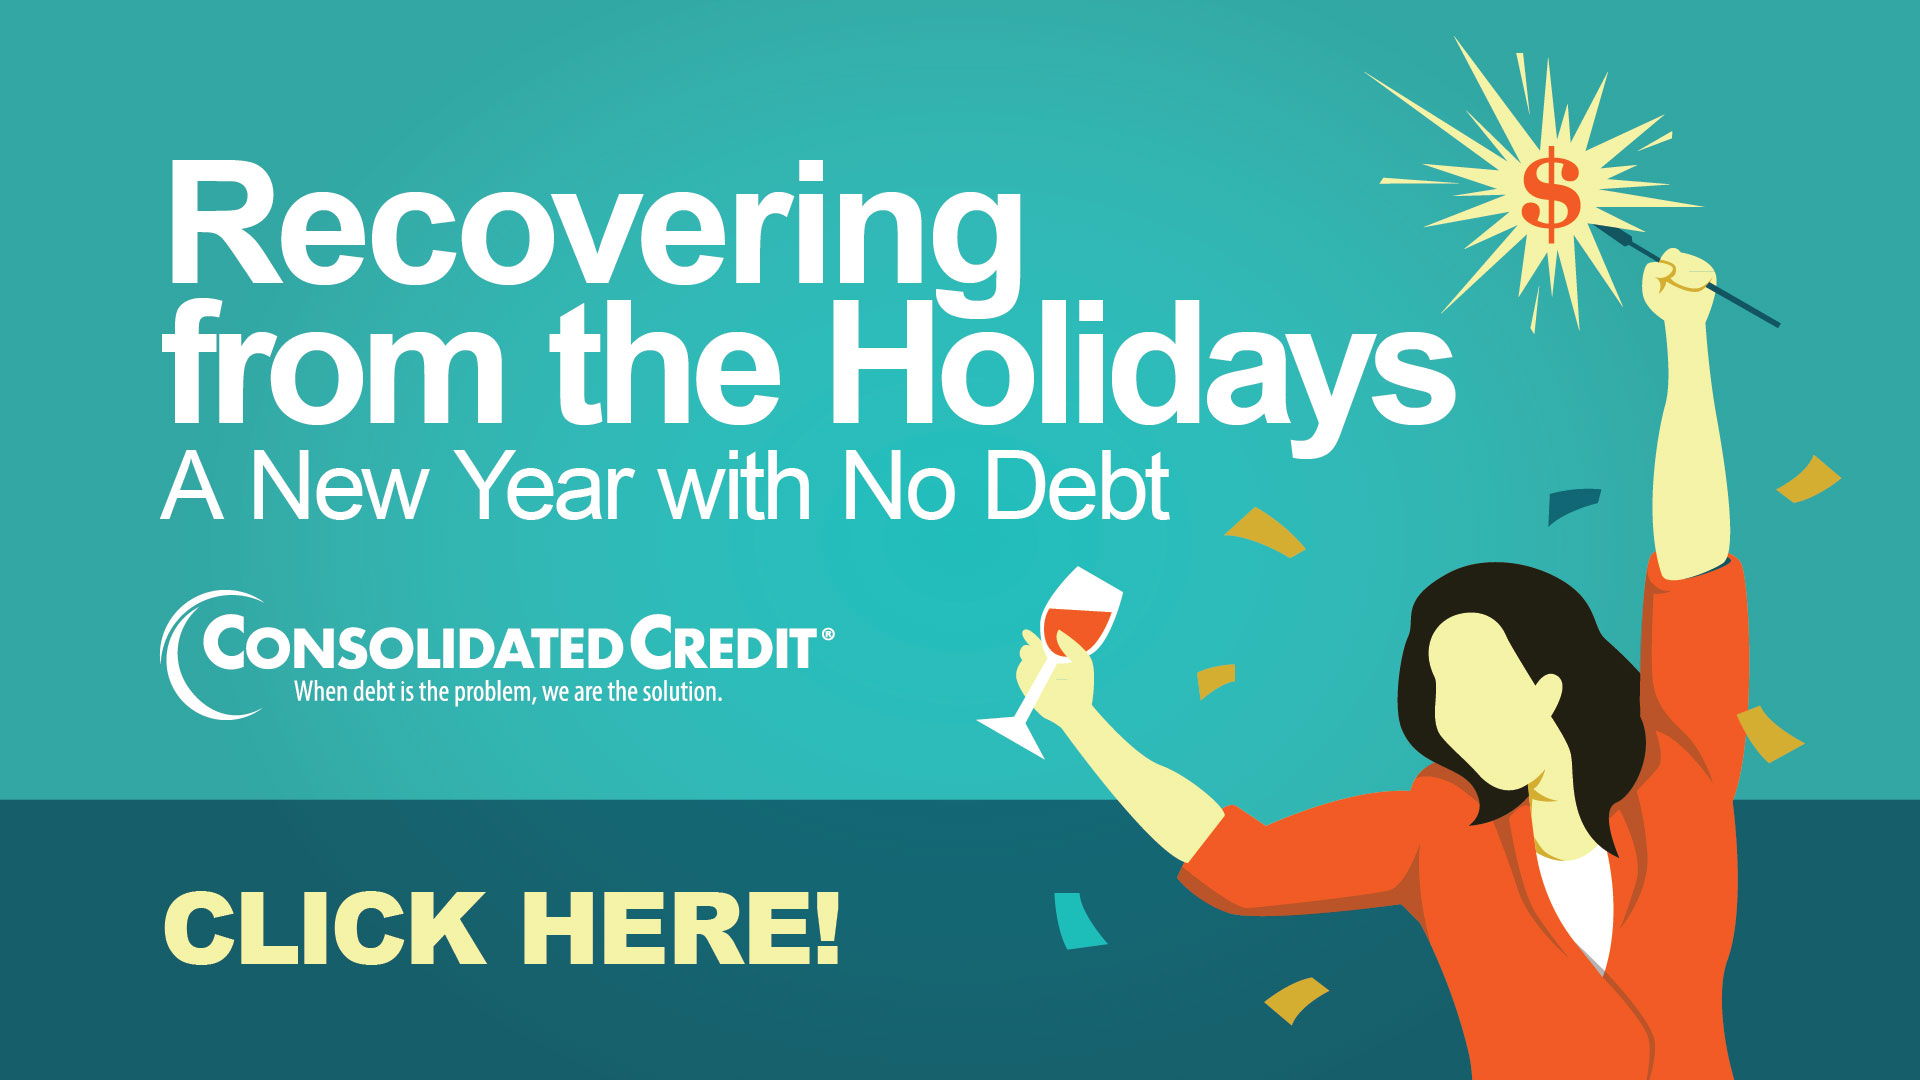 Recovering from the Holidays: A New Year with No Debt - Click Here!